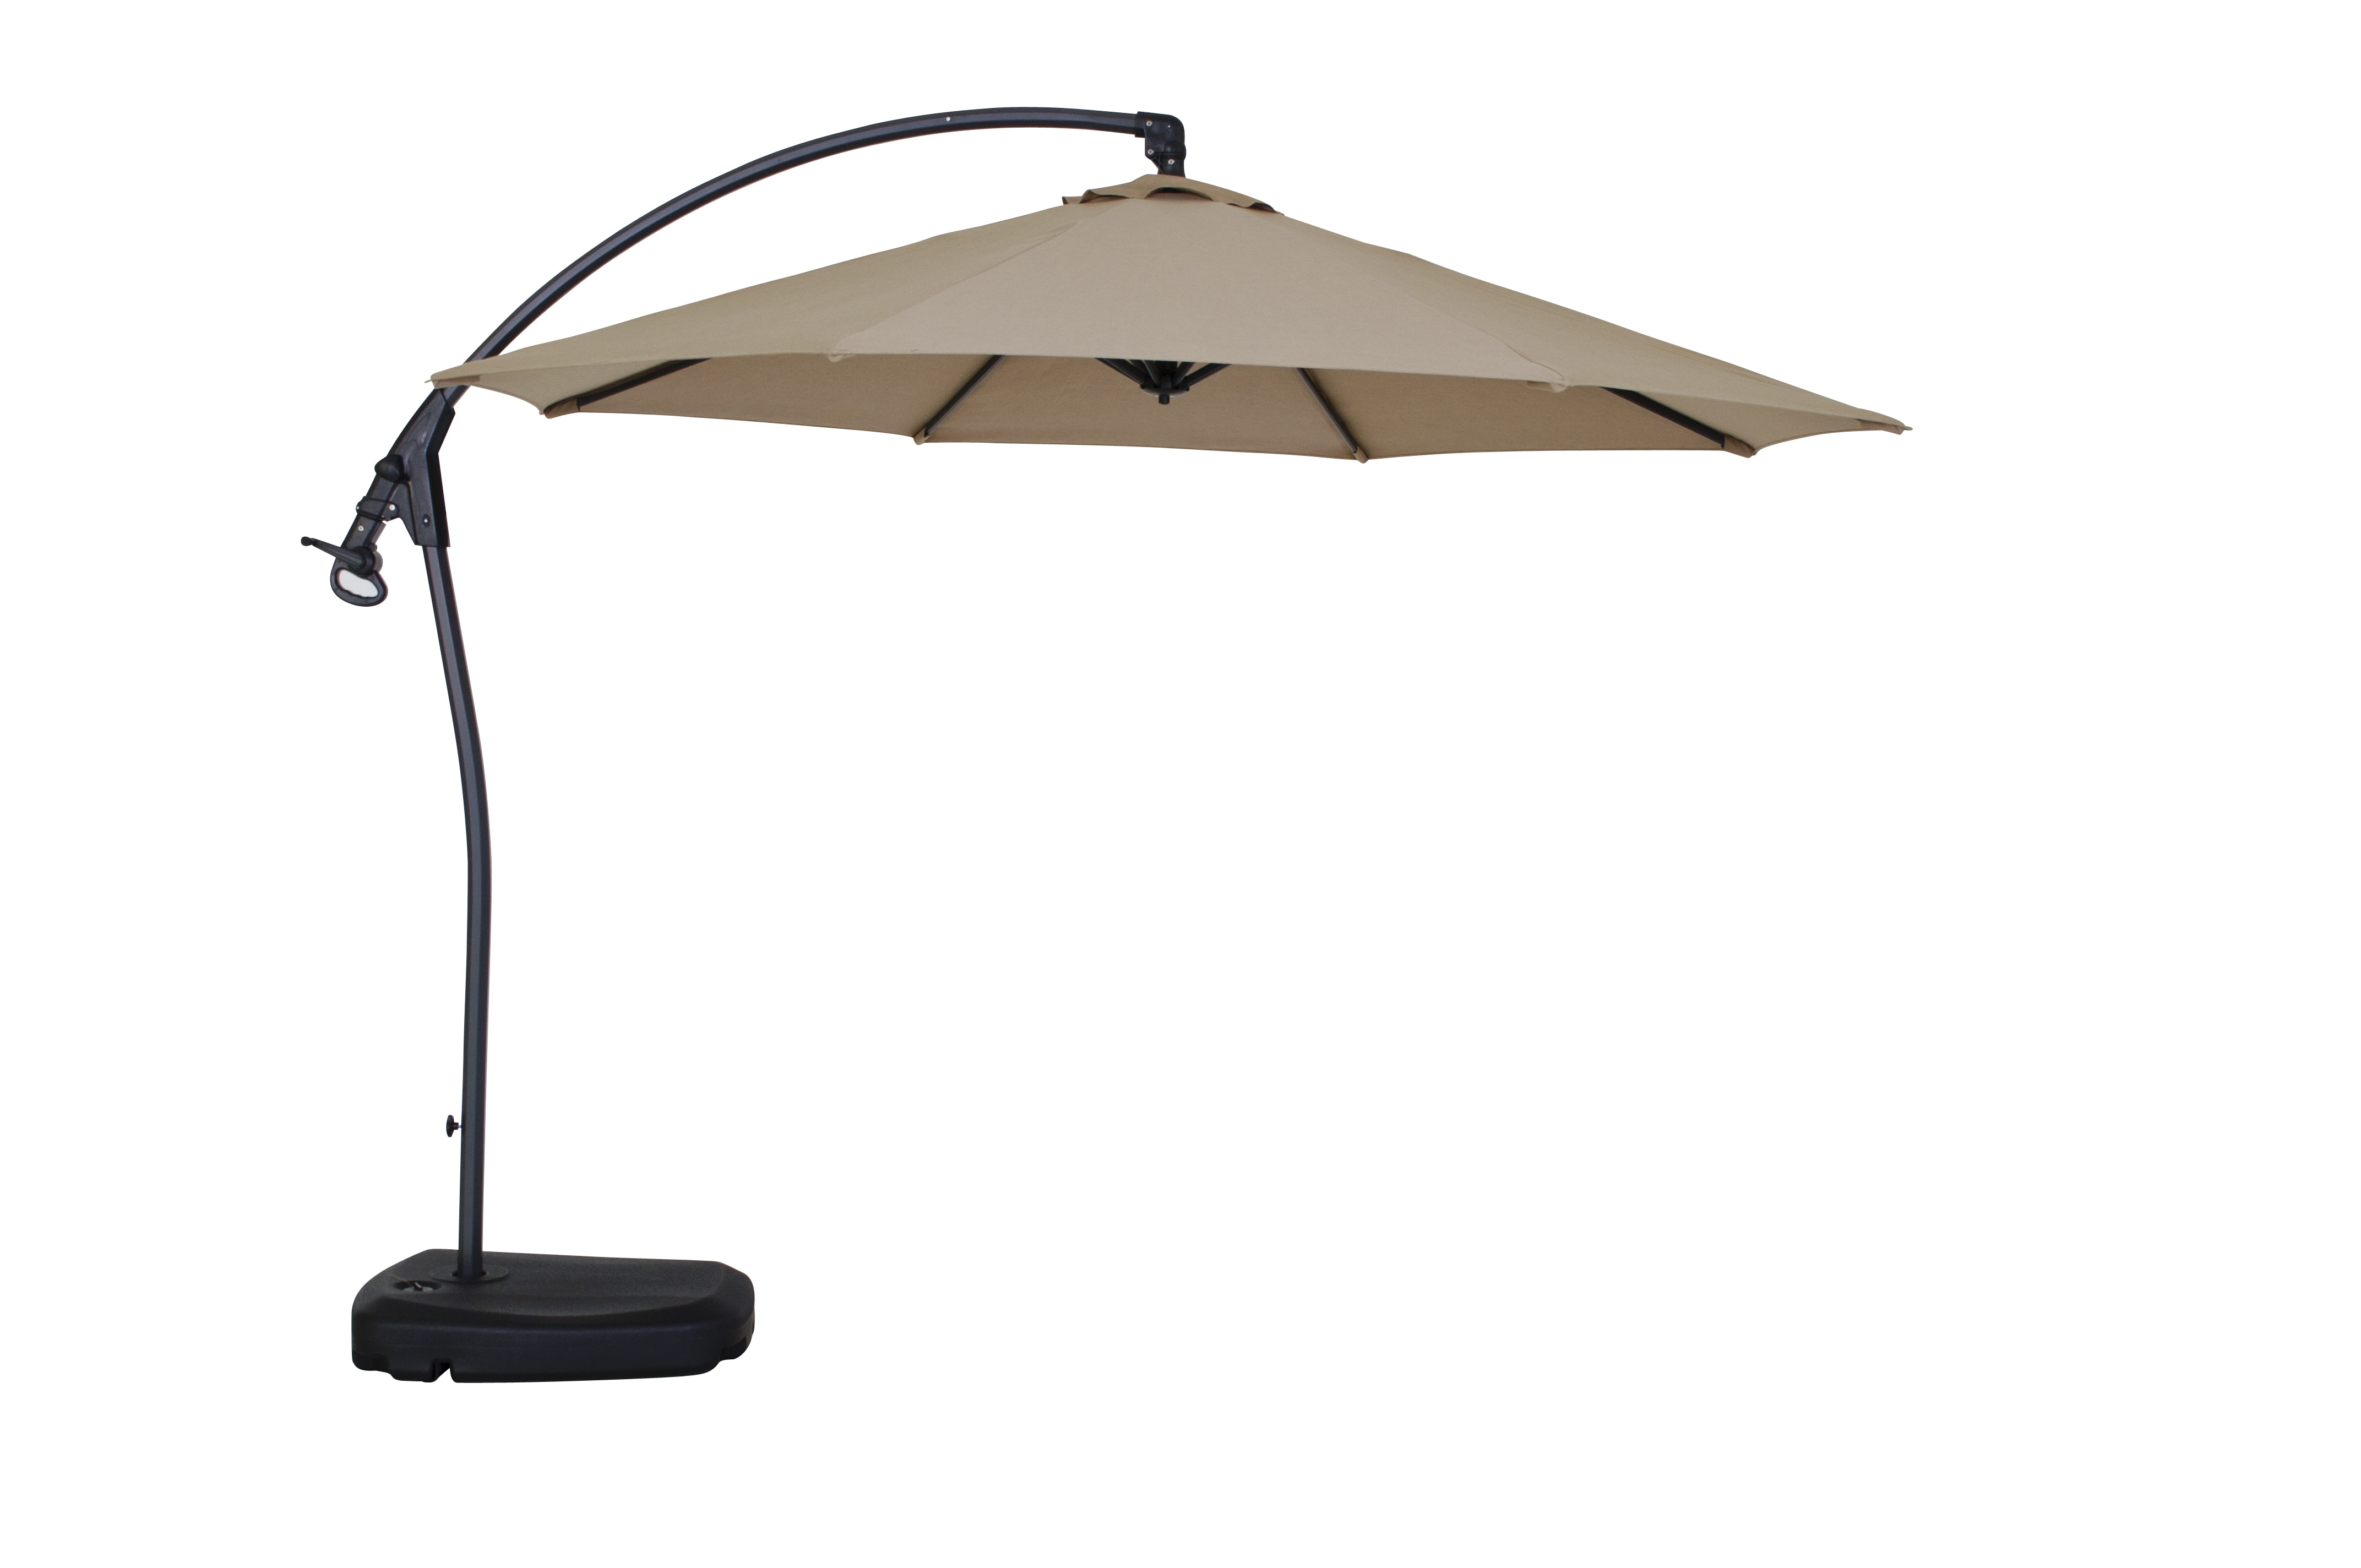 kontiki shade u0026 cooling offset patio umbrellas 10 ft signature round umbrella sunbrella fabric and base included